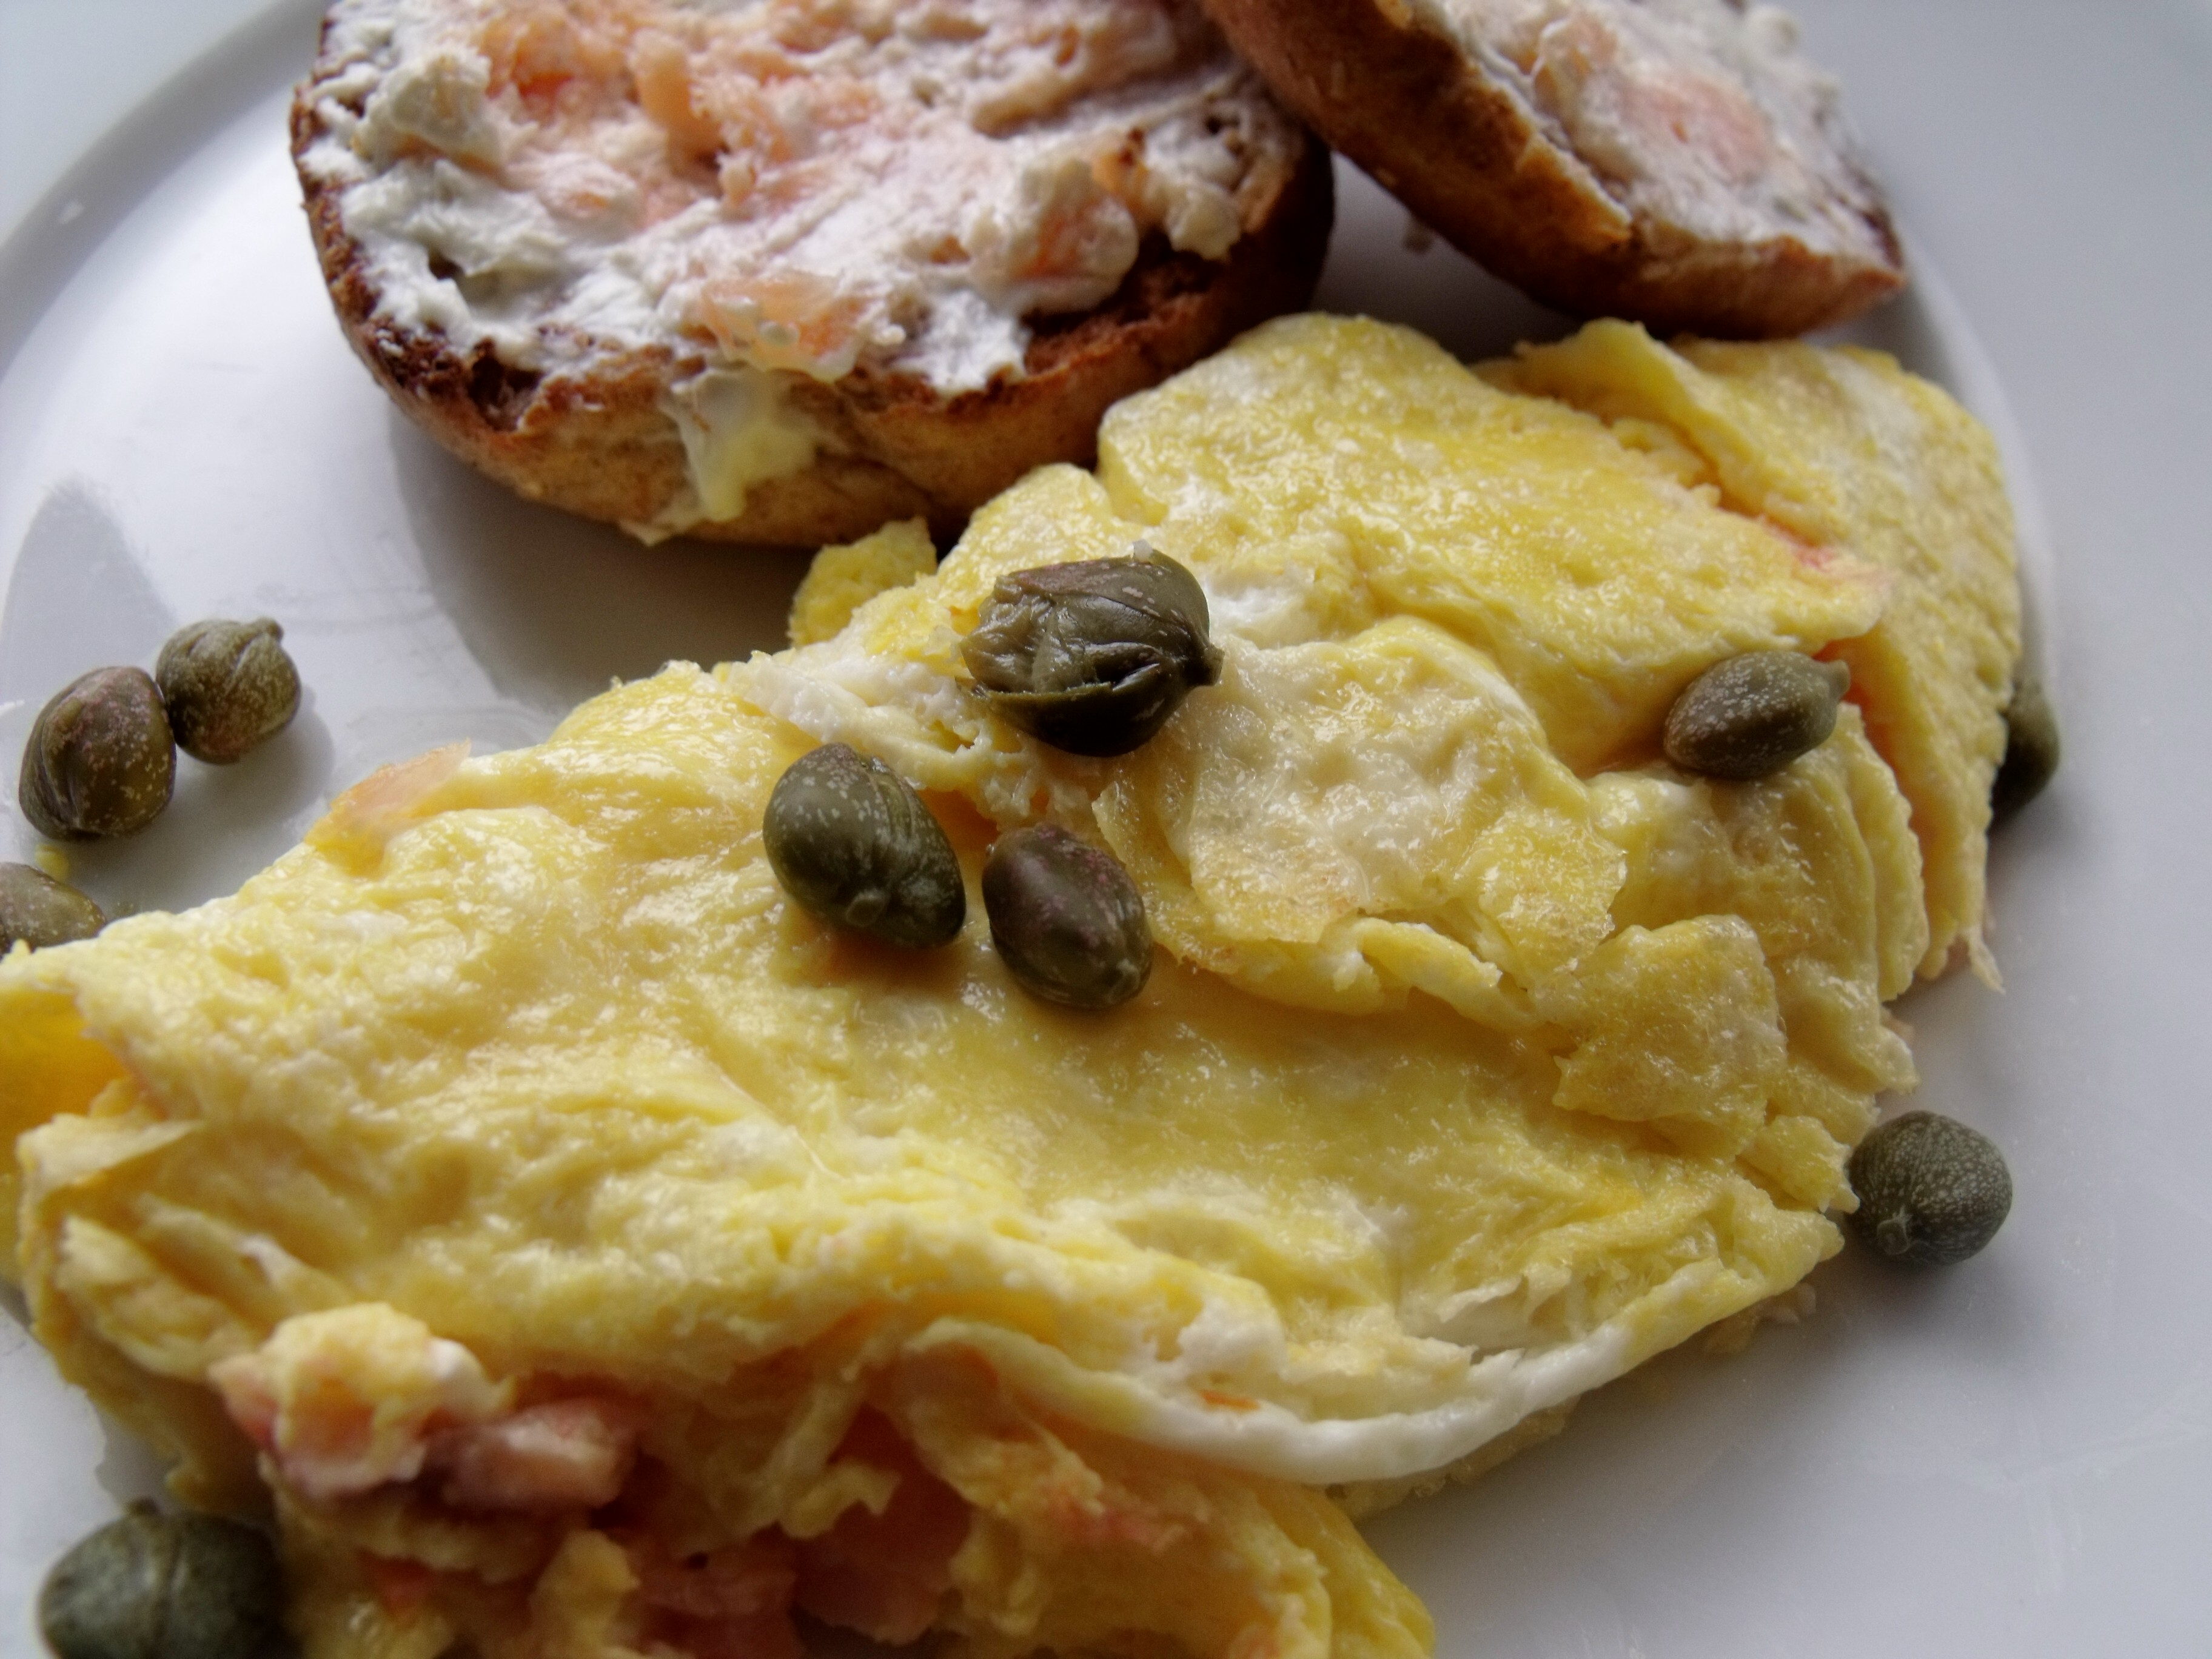 Lox & Cream Cheese Omelet #SundaySupper - Cindy's Recipes ...